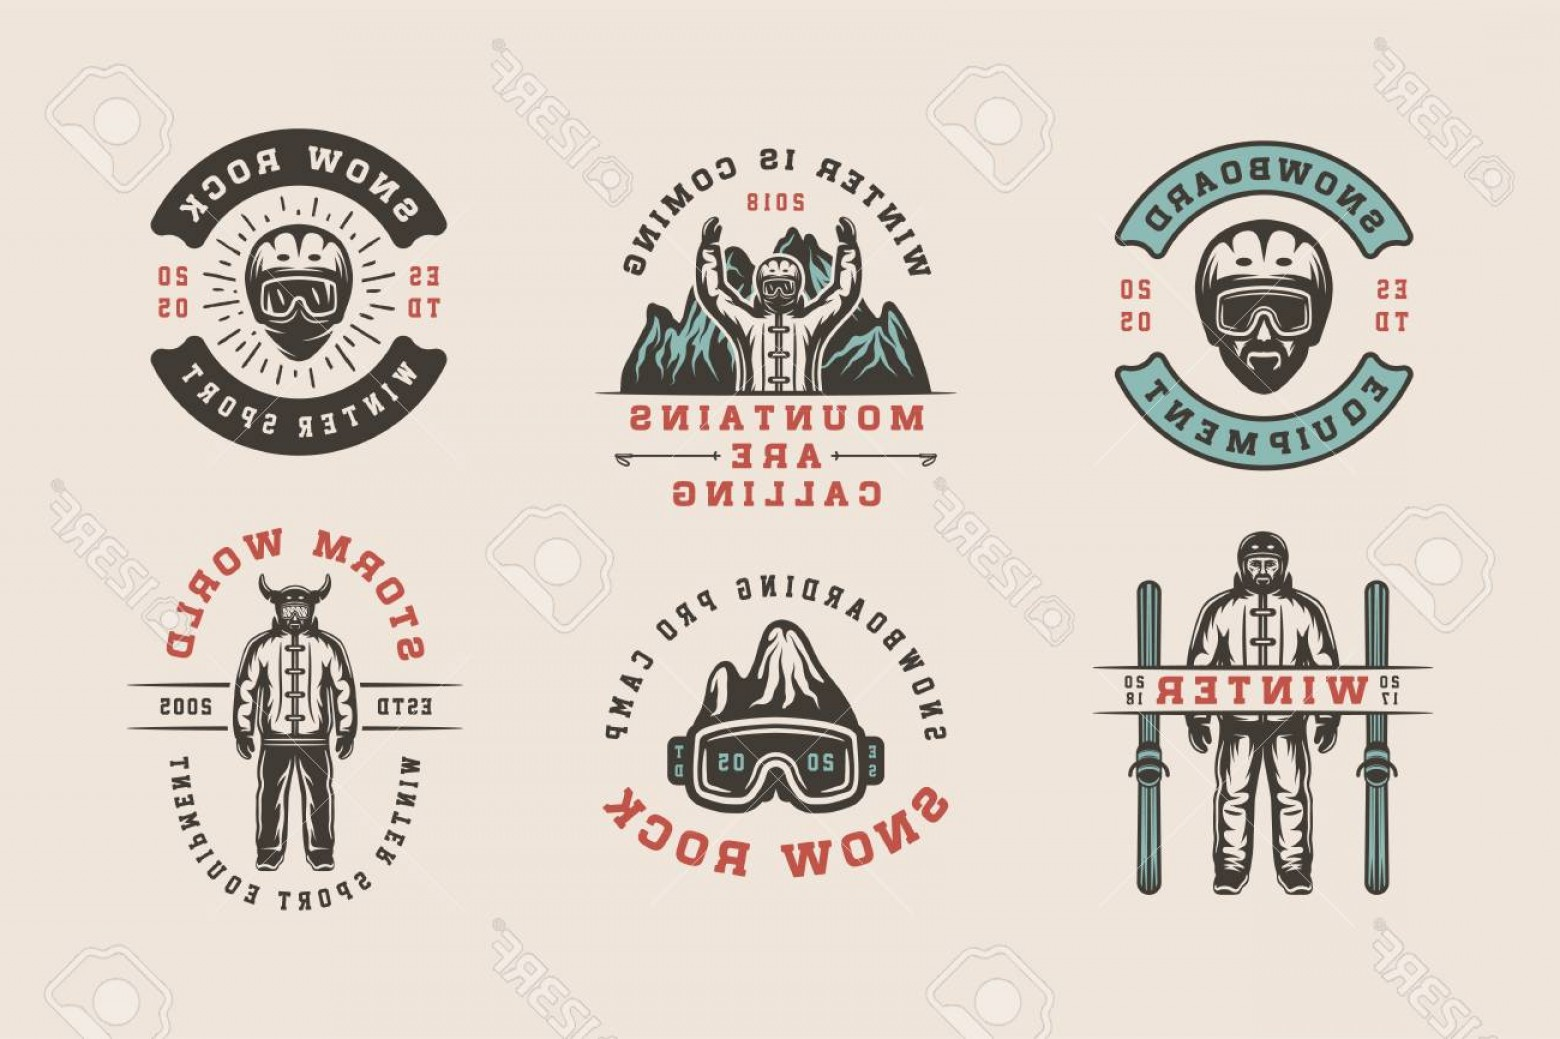 Sports Logos Vector Art: Photostock Vector Set Of Vintage Snowboarding Ski Or Winter Sports Logos Badges Emblems And Design Elements Vector Ill